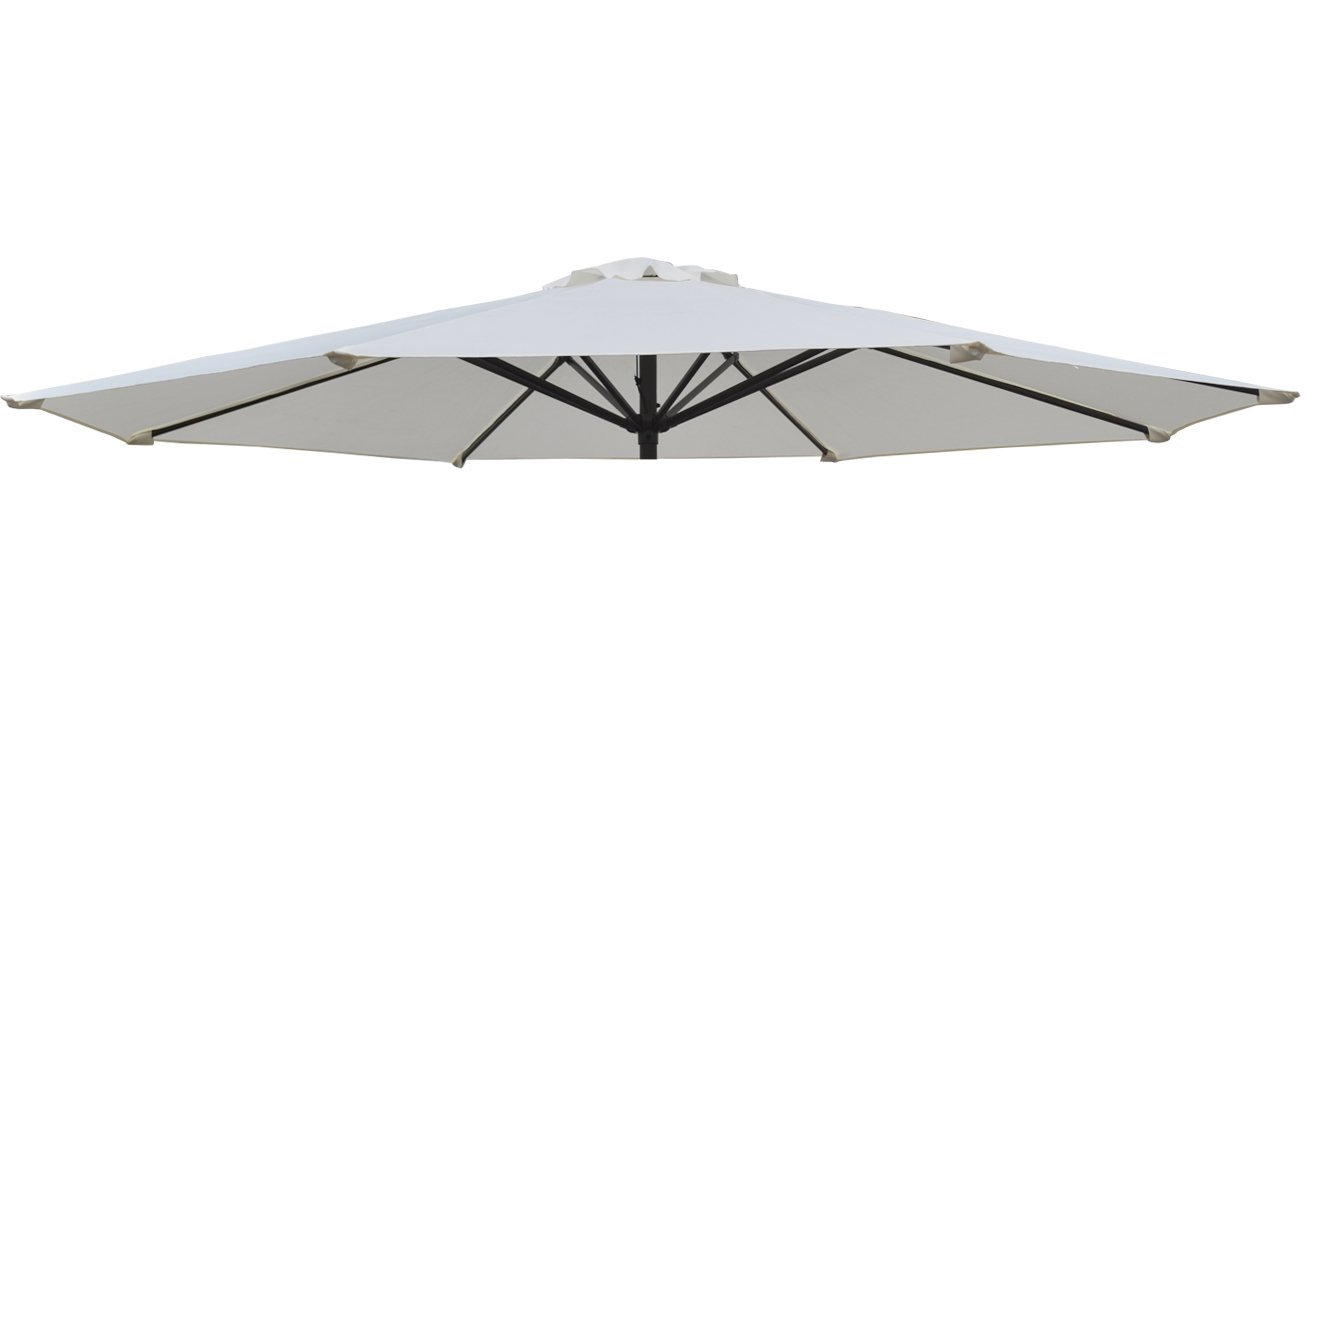 Replacement Patio Umbrella Canopy Cover For 9ft 8 Ribs Umbrella Ecru (CANOPY  ONLY)